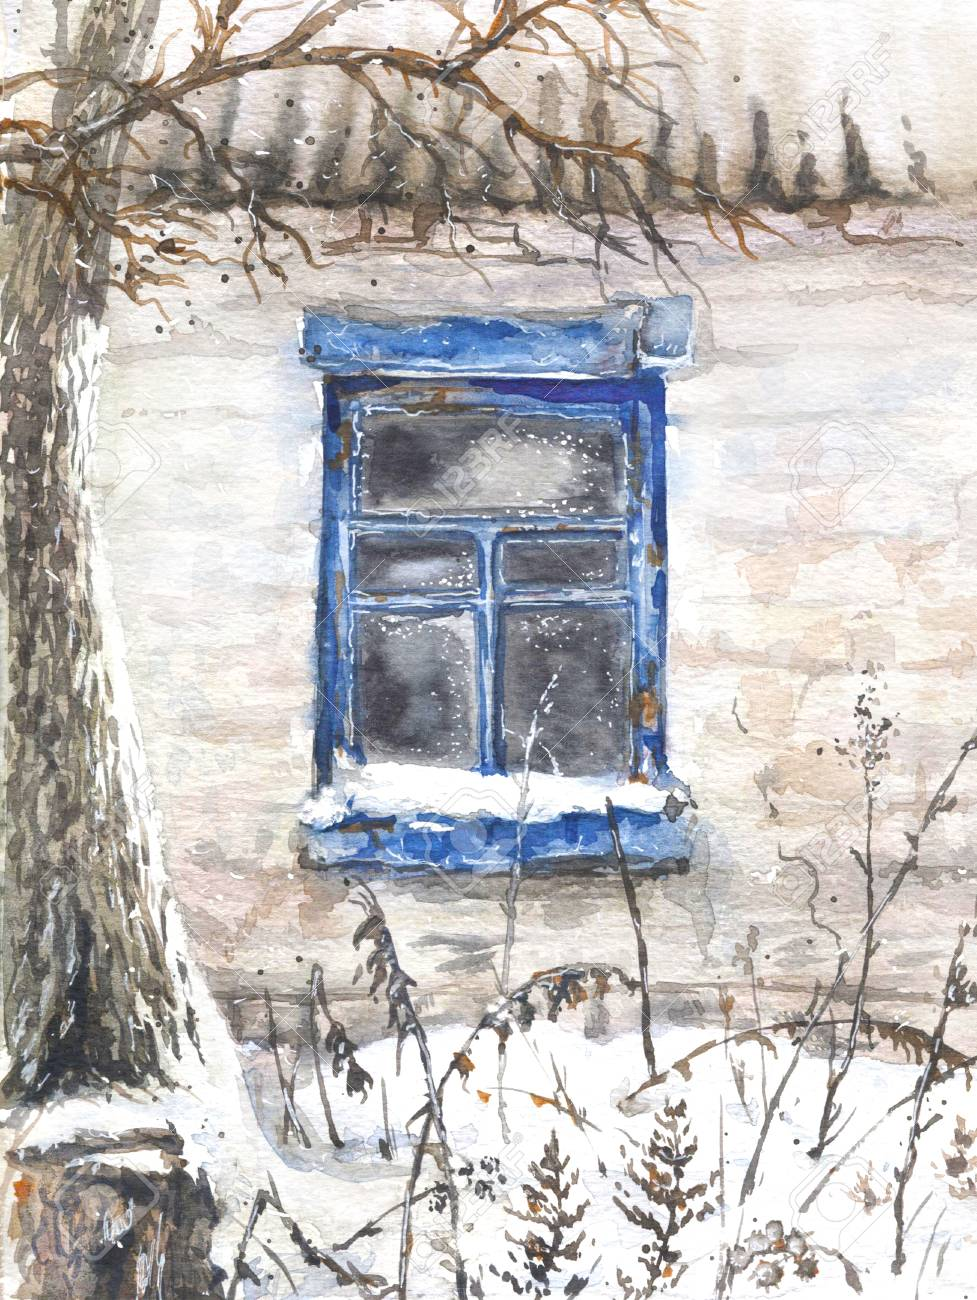 Watercolor Painting Hand Drawn Wall With Window Of An Old Abandoned